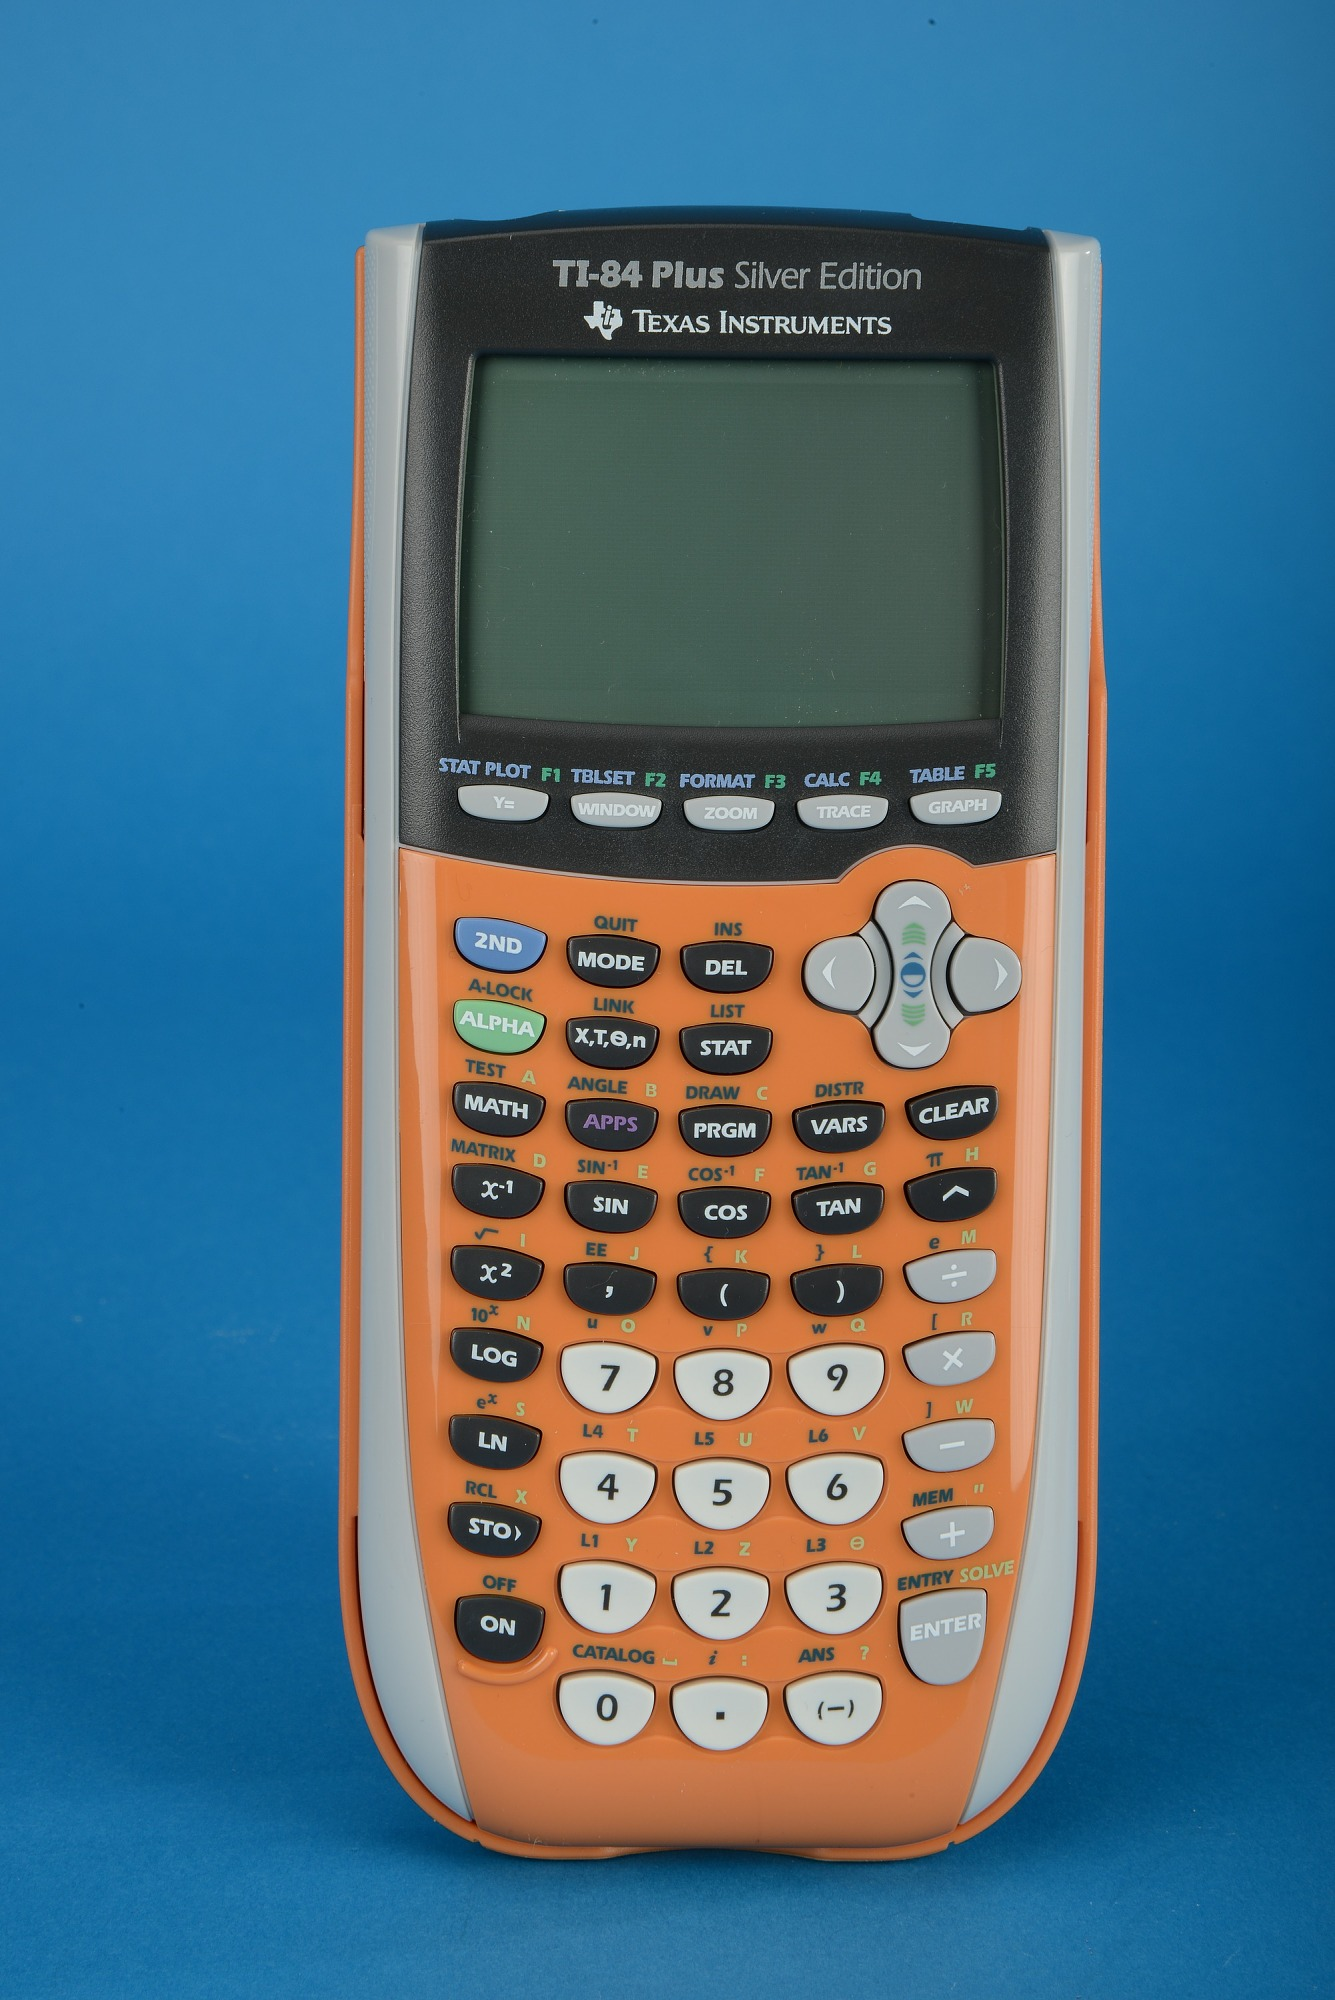 Texas Instruments TI-84 Plus Silver Edition Handheld Electronic Calculator.  Previous. Next. << 1 ...